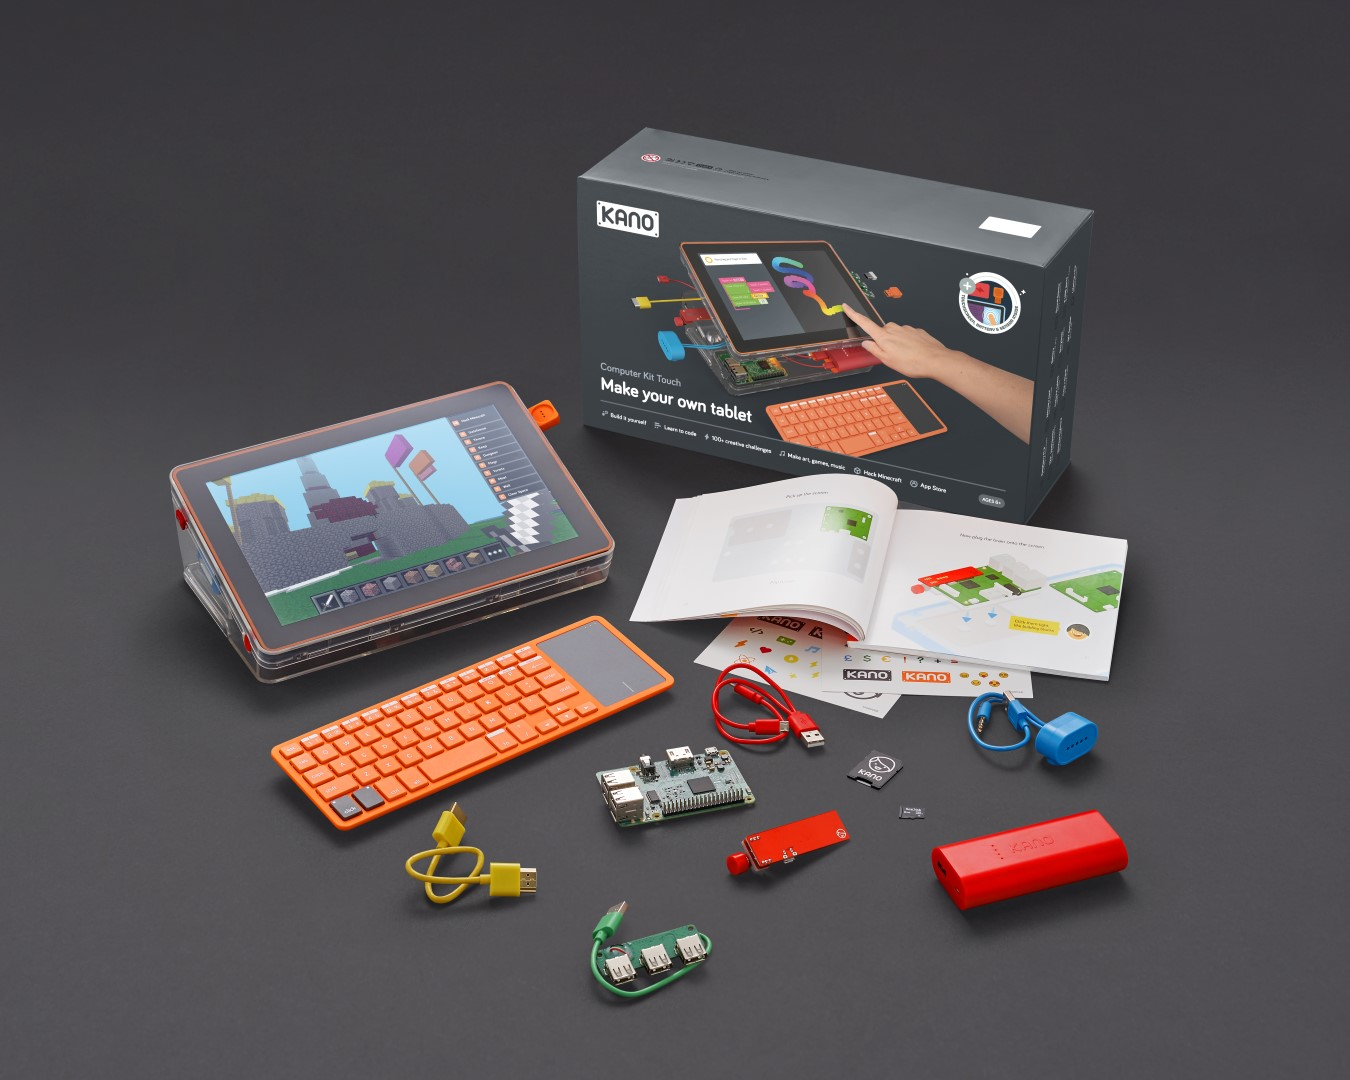 Kano adds a touchscreen to its DIY computer kit, shipping now for $279.99